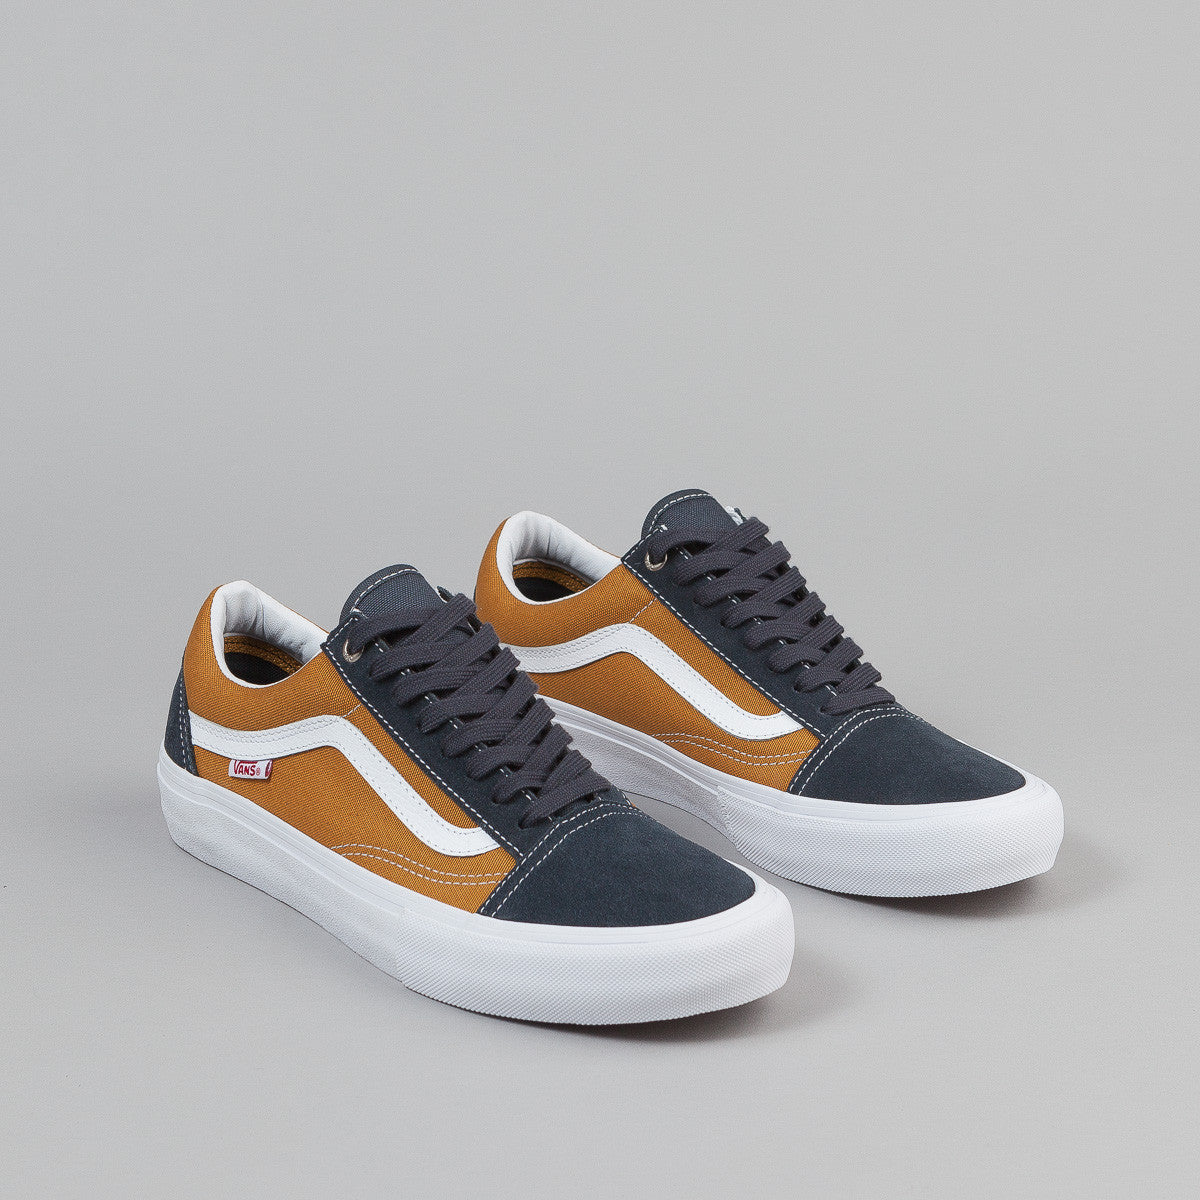 Vans Old Skool Pro Shoes - Ebony / Thrush